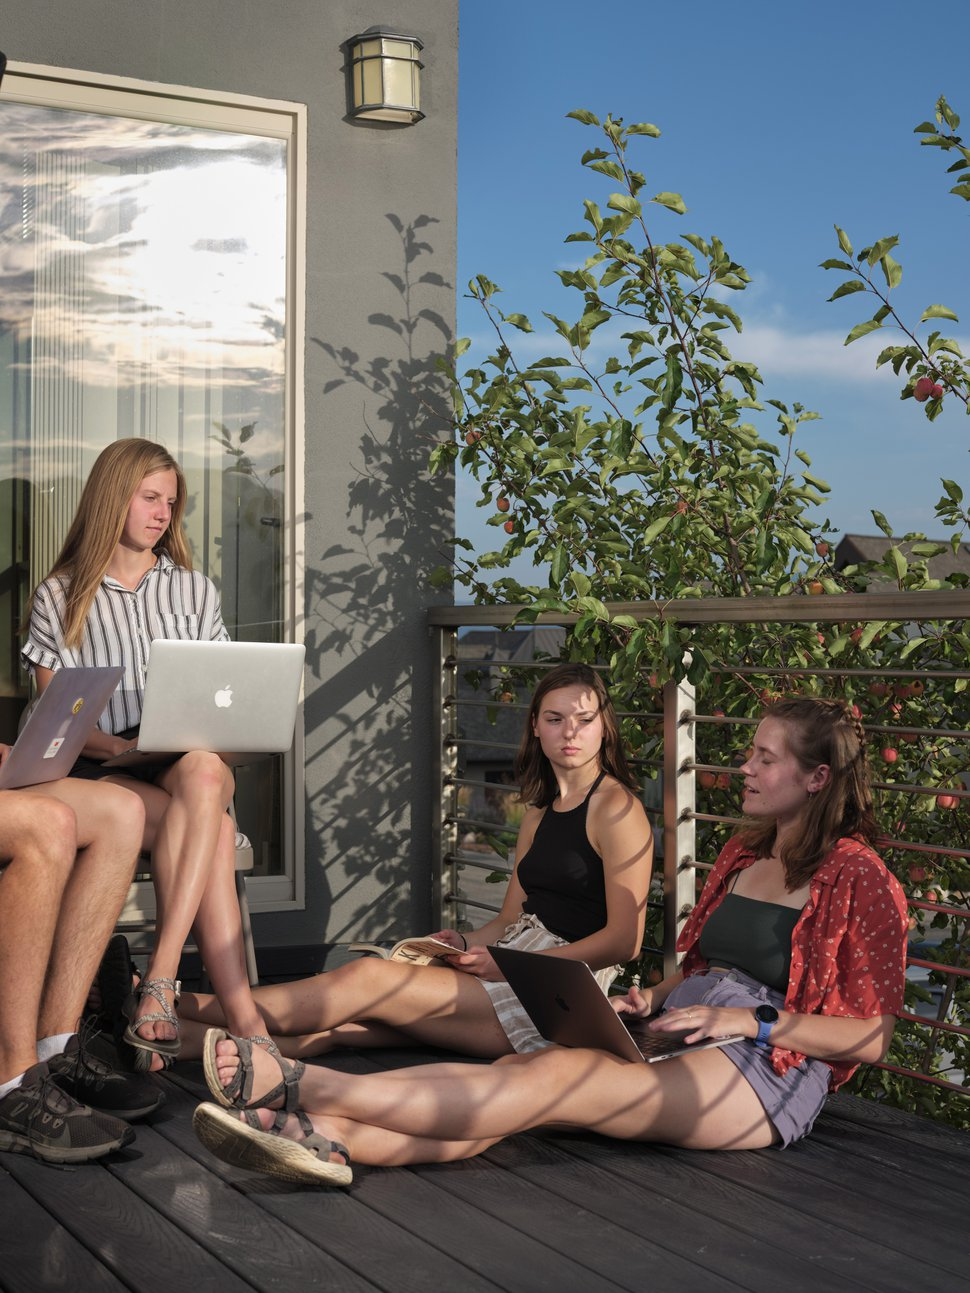 (Lindsay D'addato | The New York Times) A group of Grinnell College students studies on the deck of their own off-campus housing group in Salt Lake City, Aug. 25, 2020.